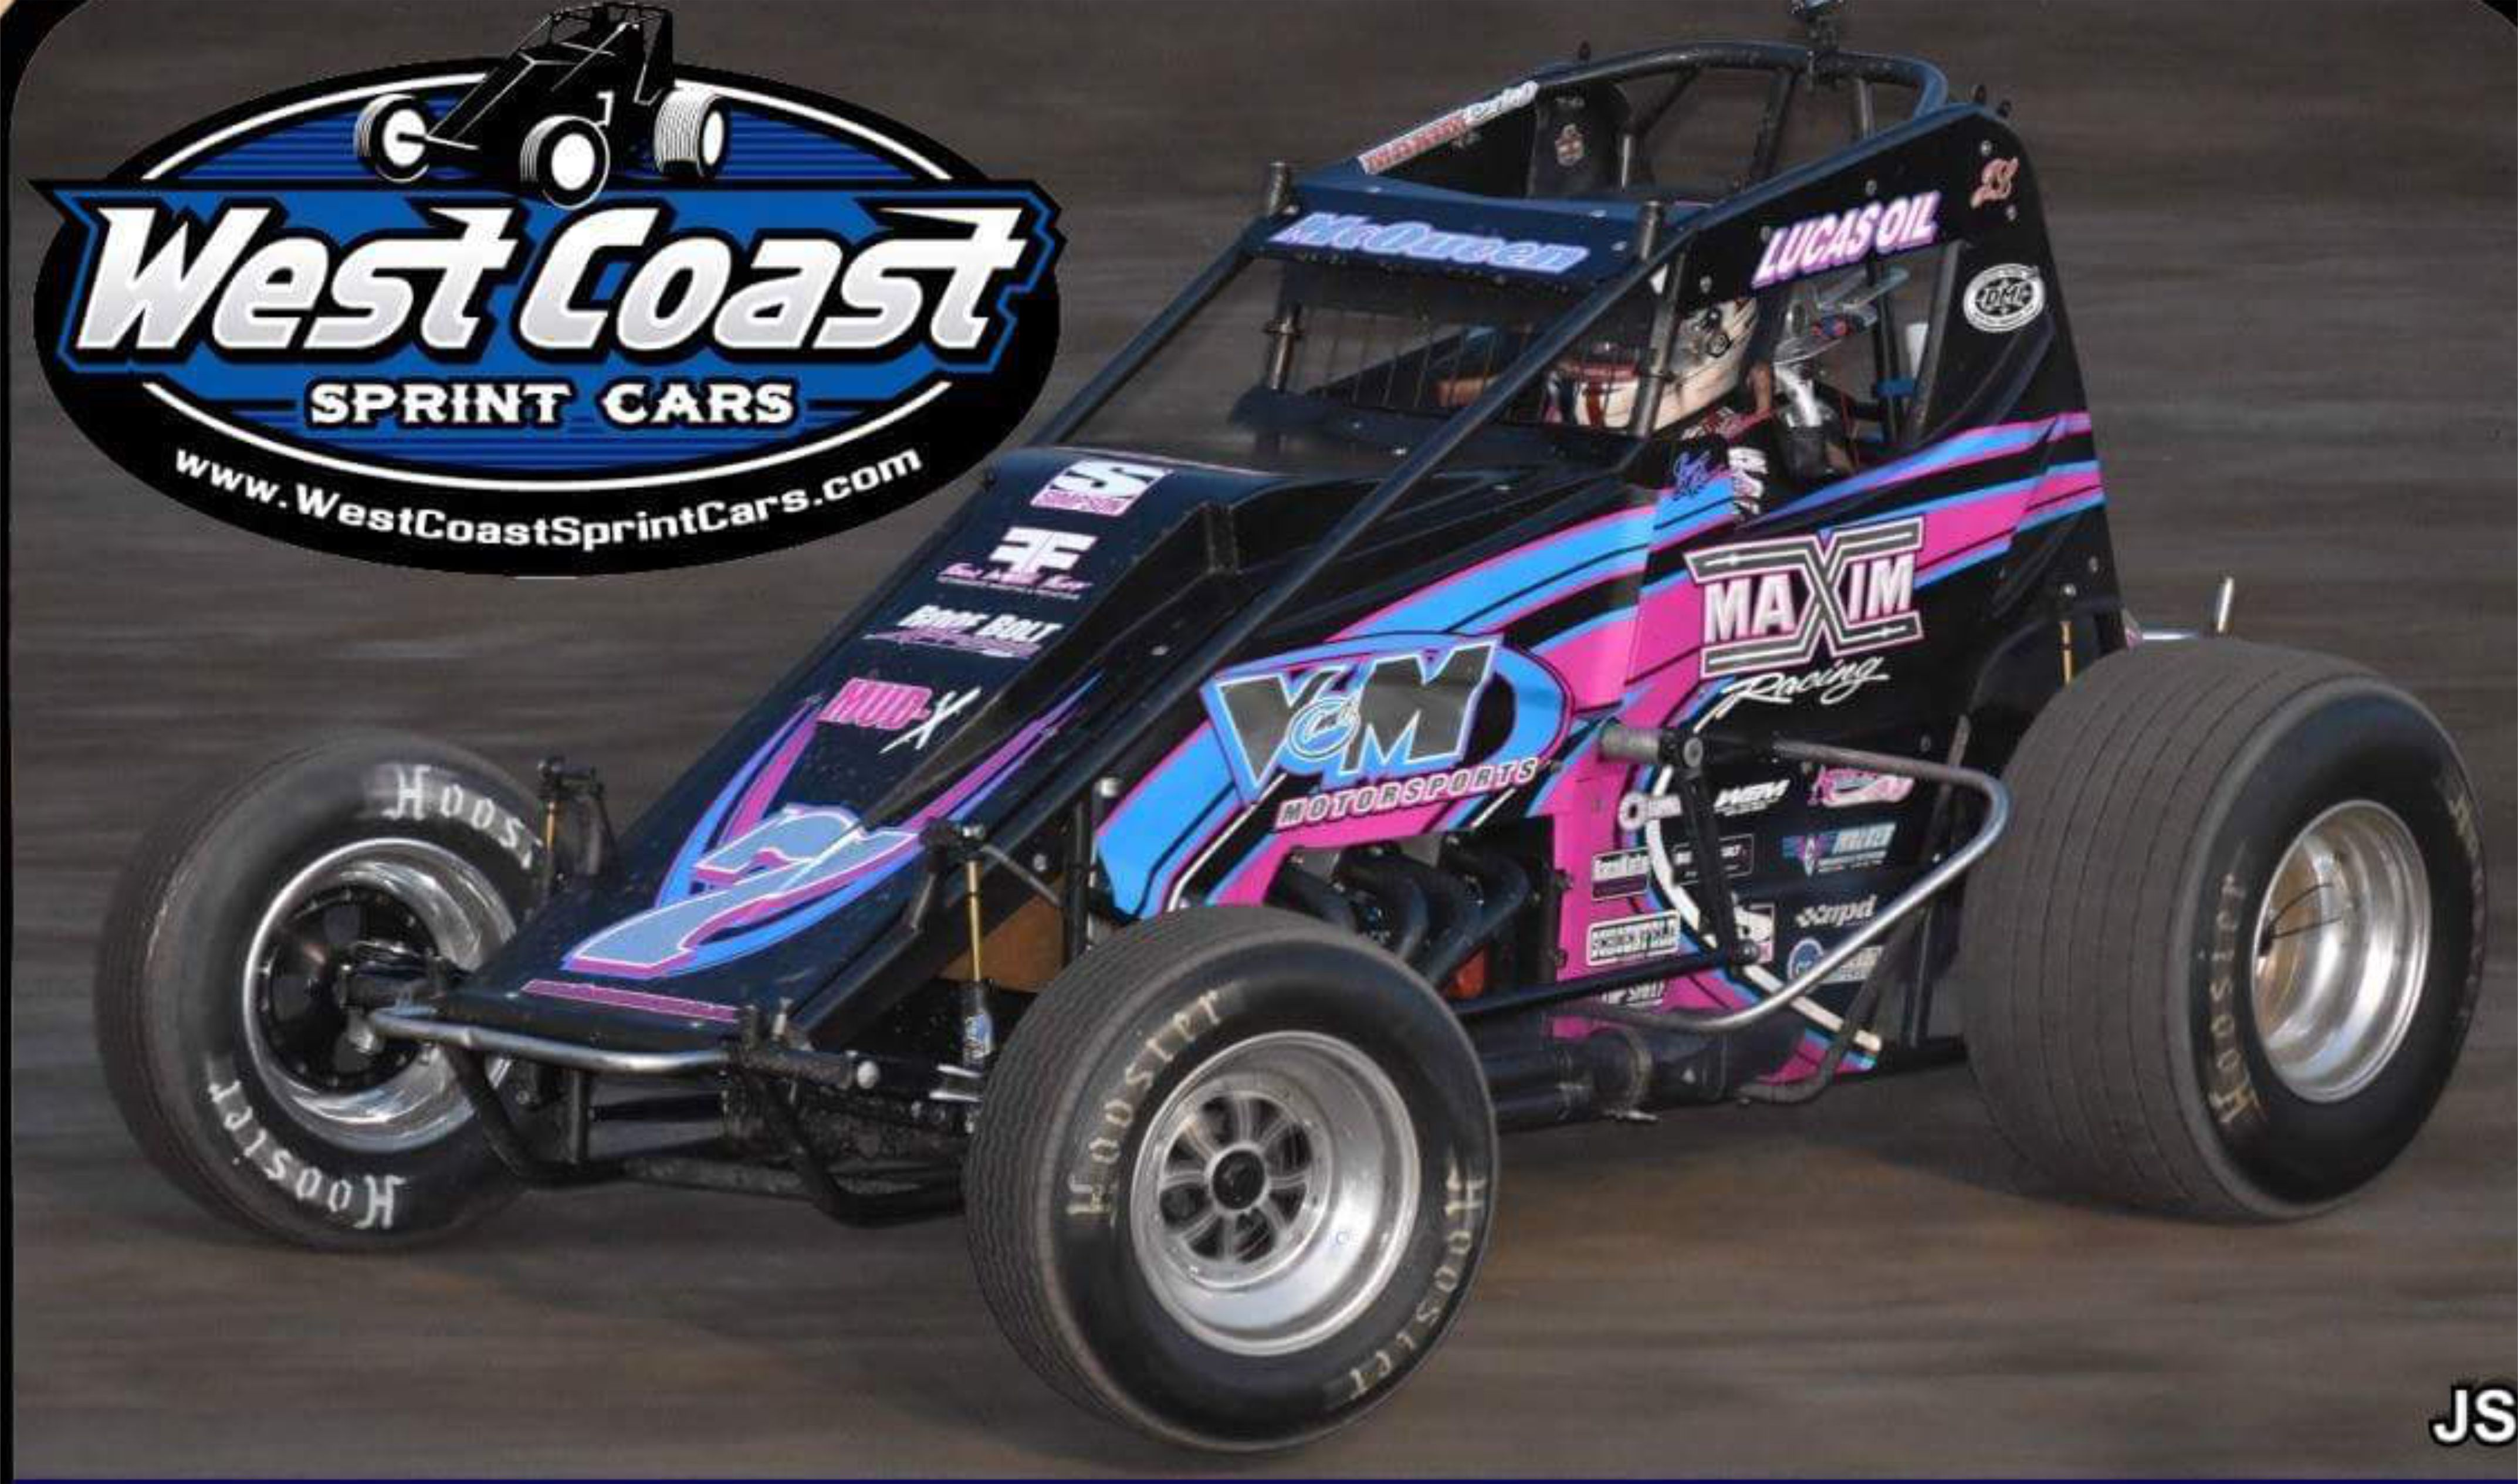 usac 360 sprint cars, sportmods, american stocks, mini stocks